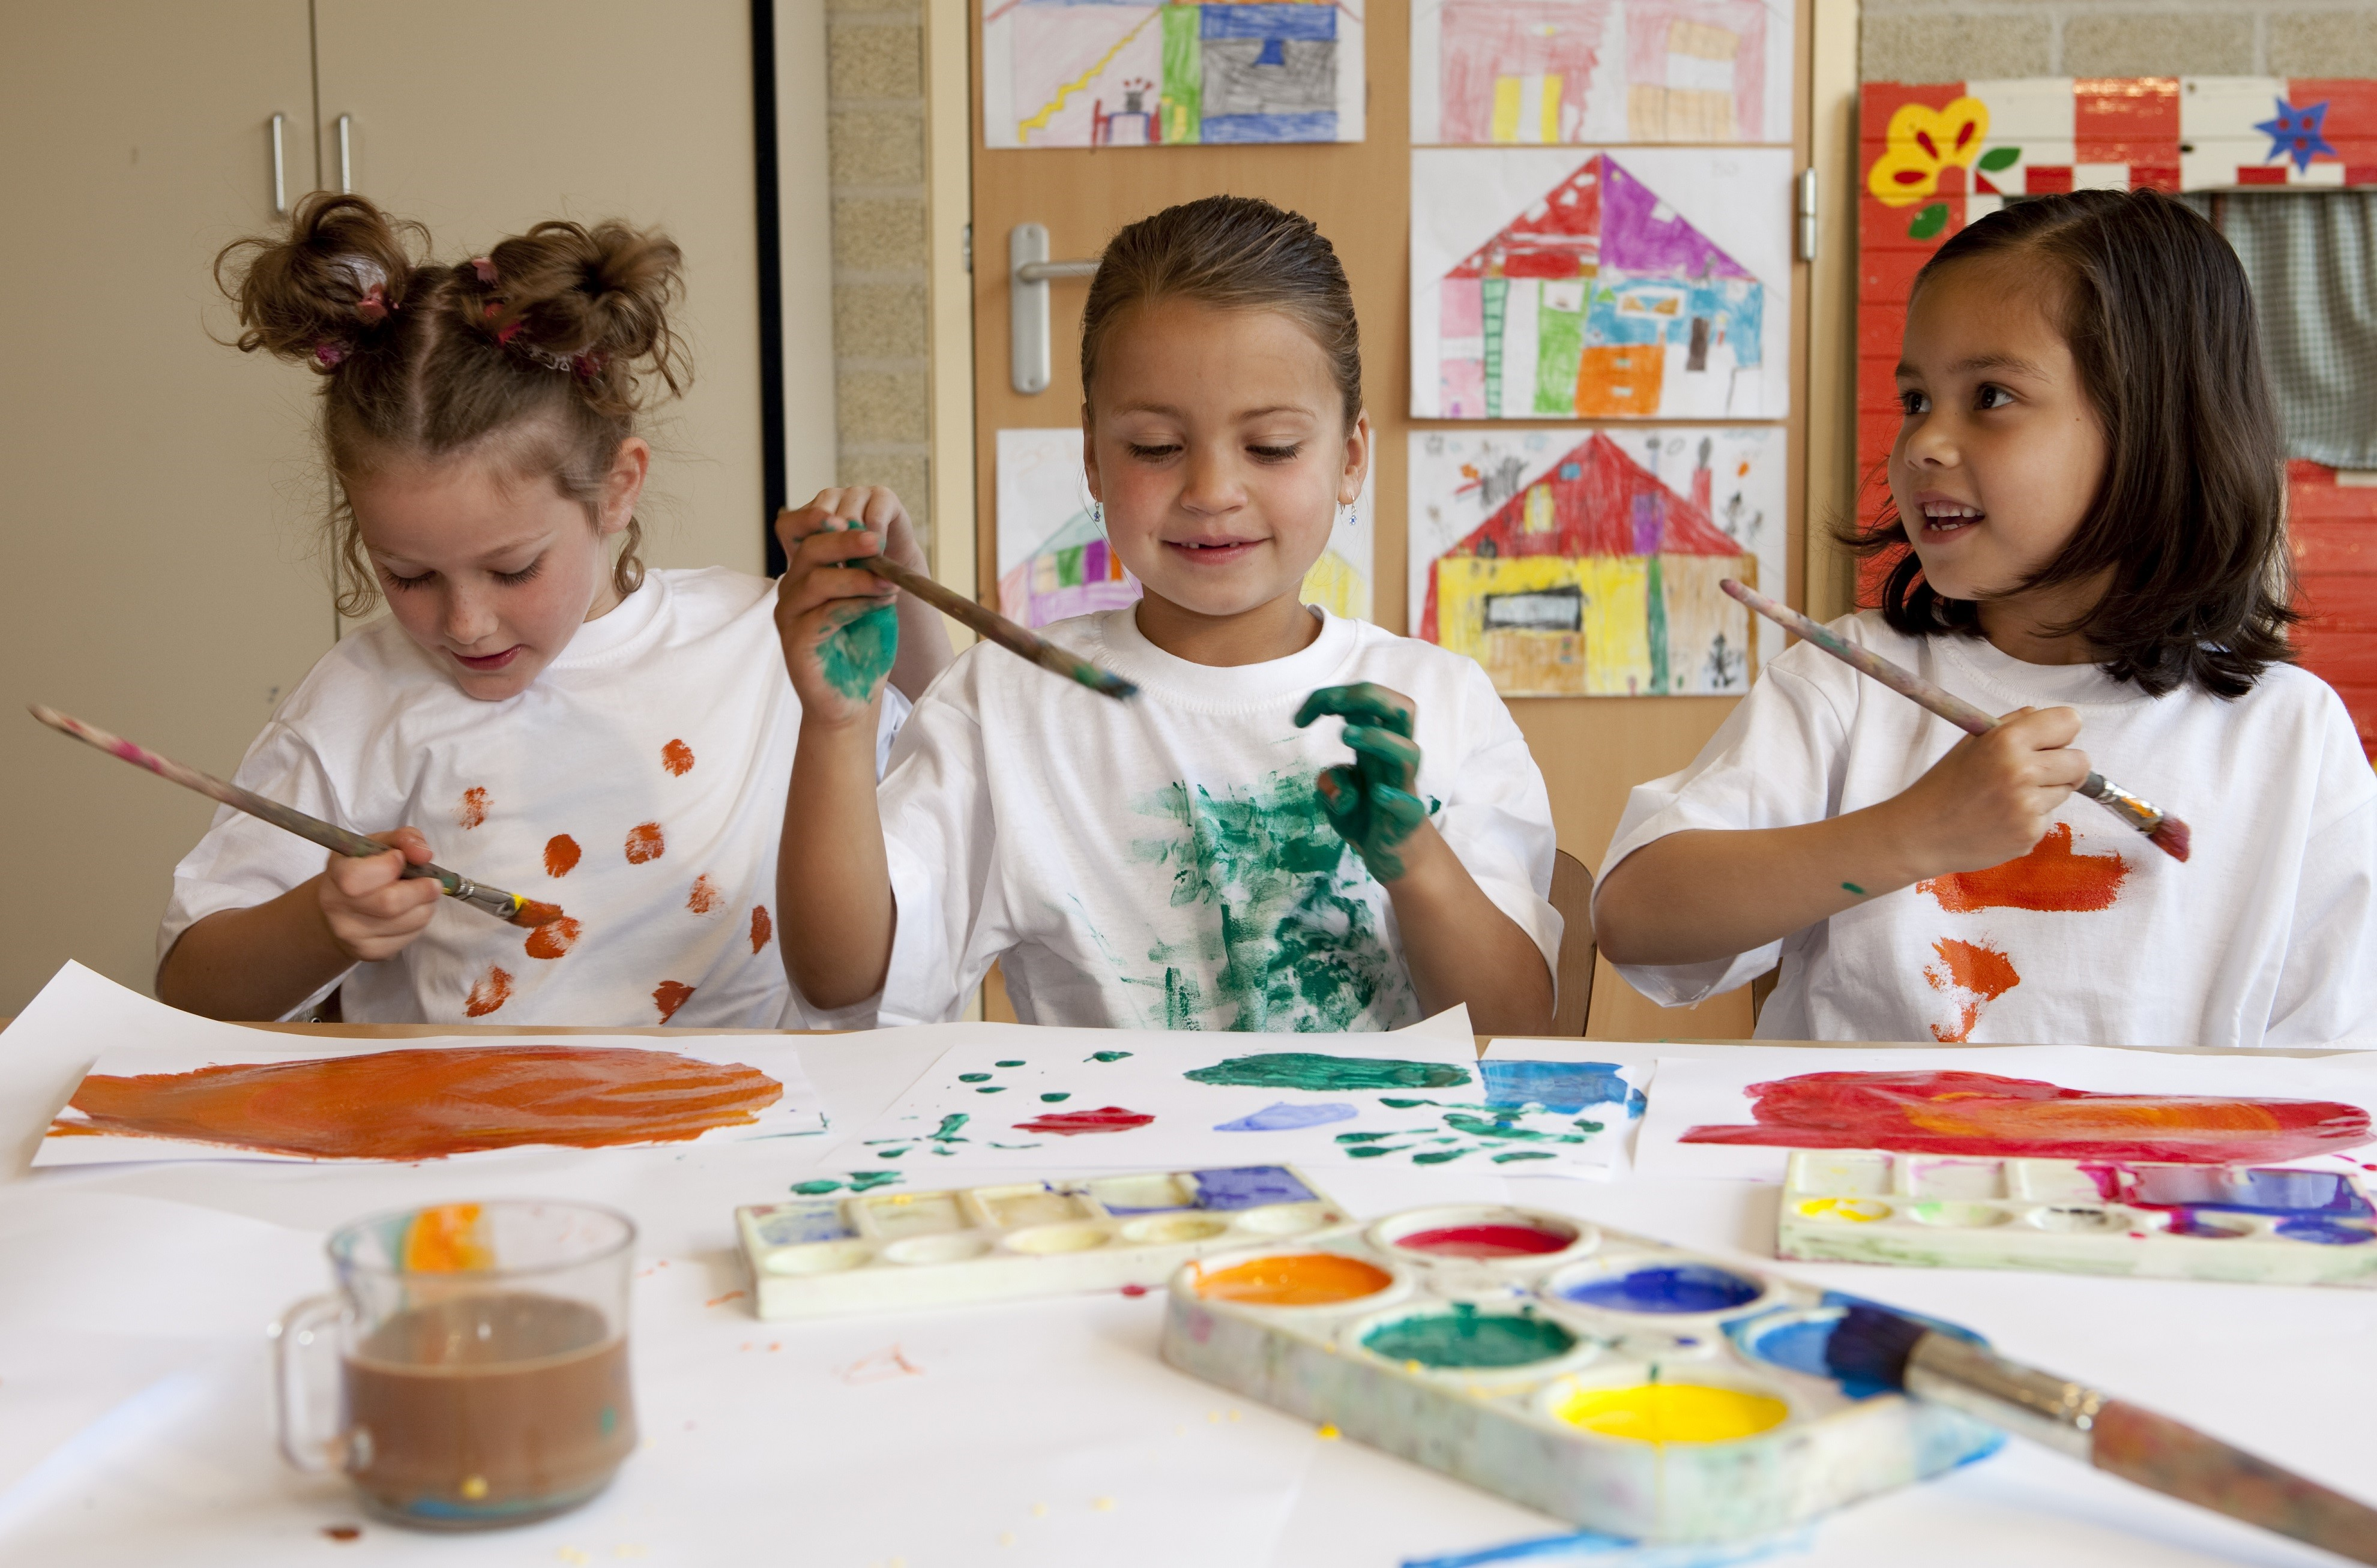 Children artists painting